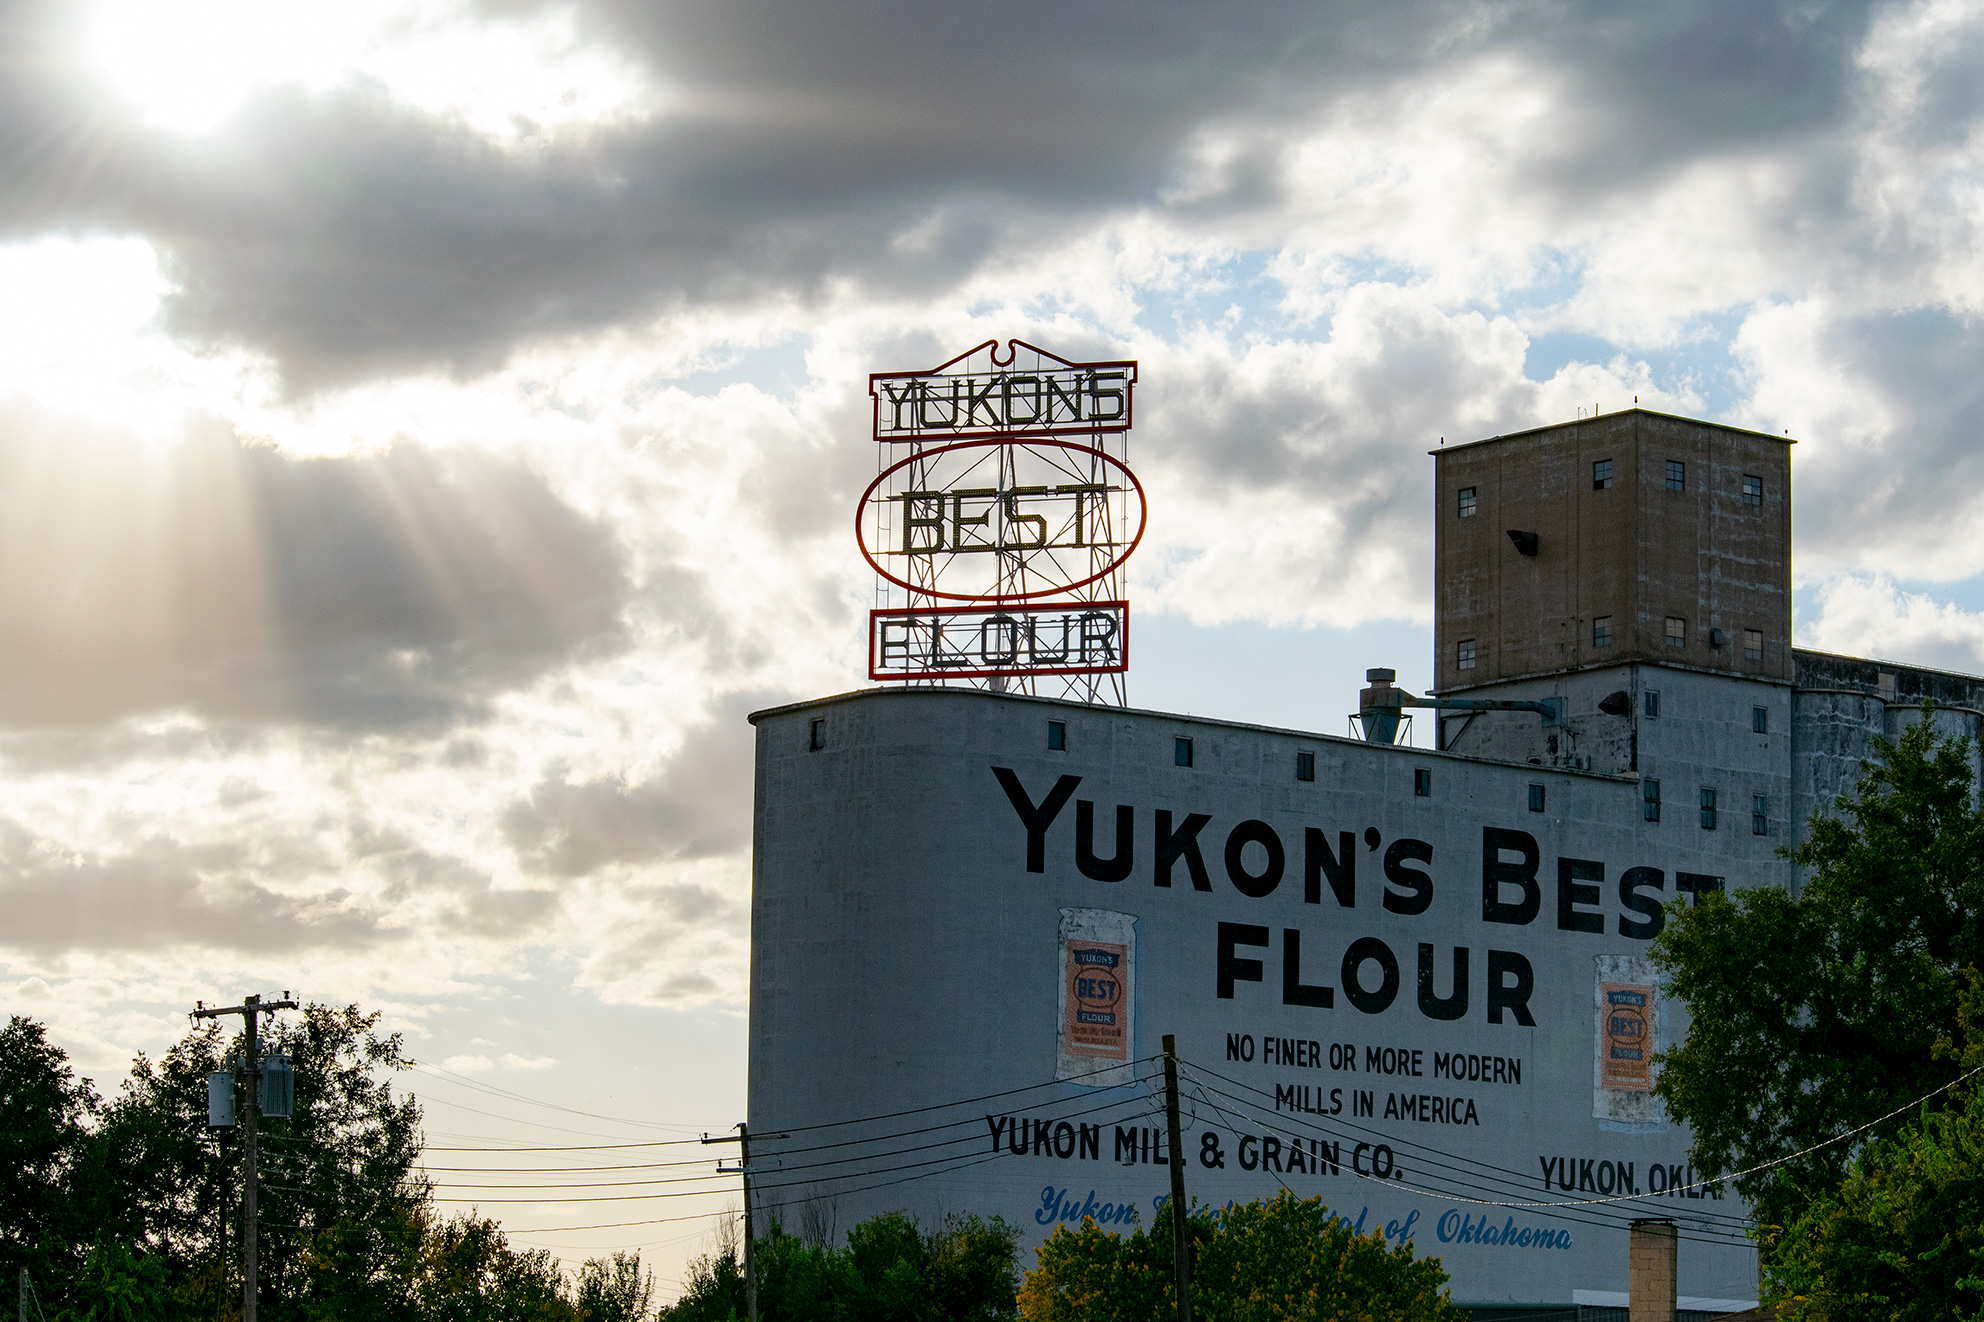 Yukon's Best Flour Mill With Clouds